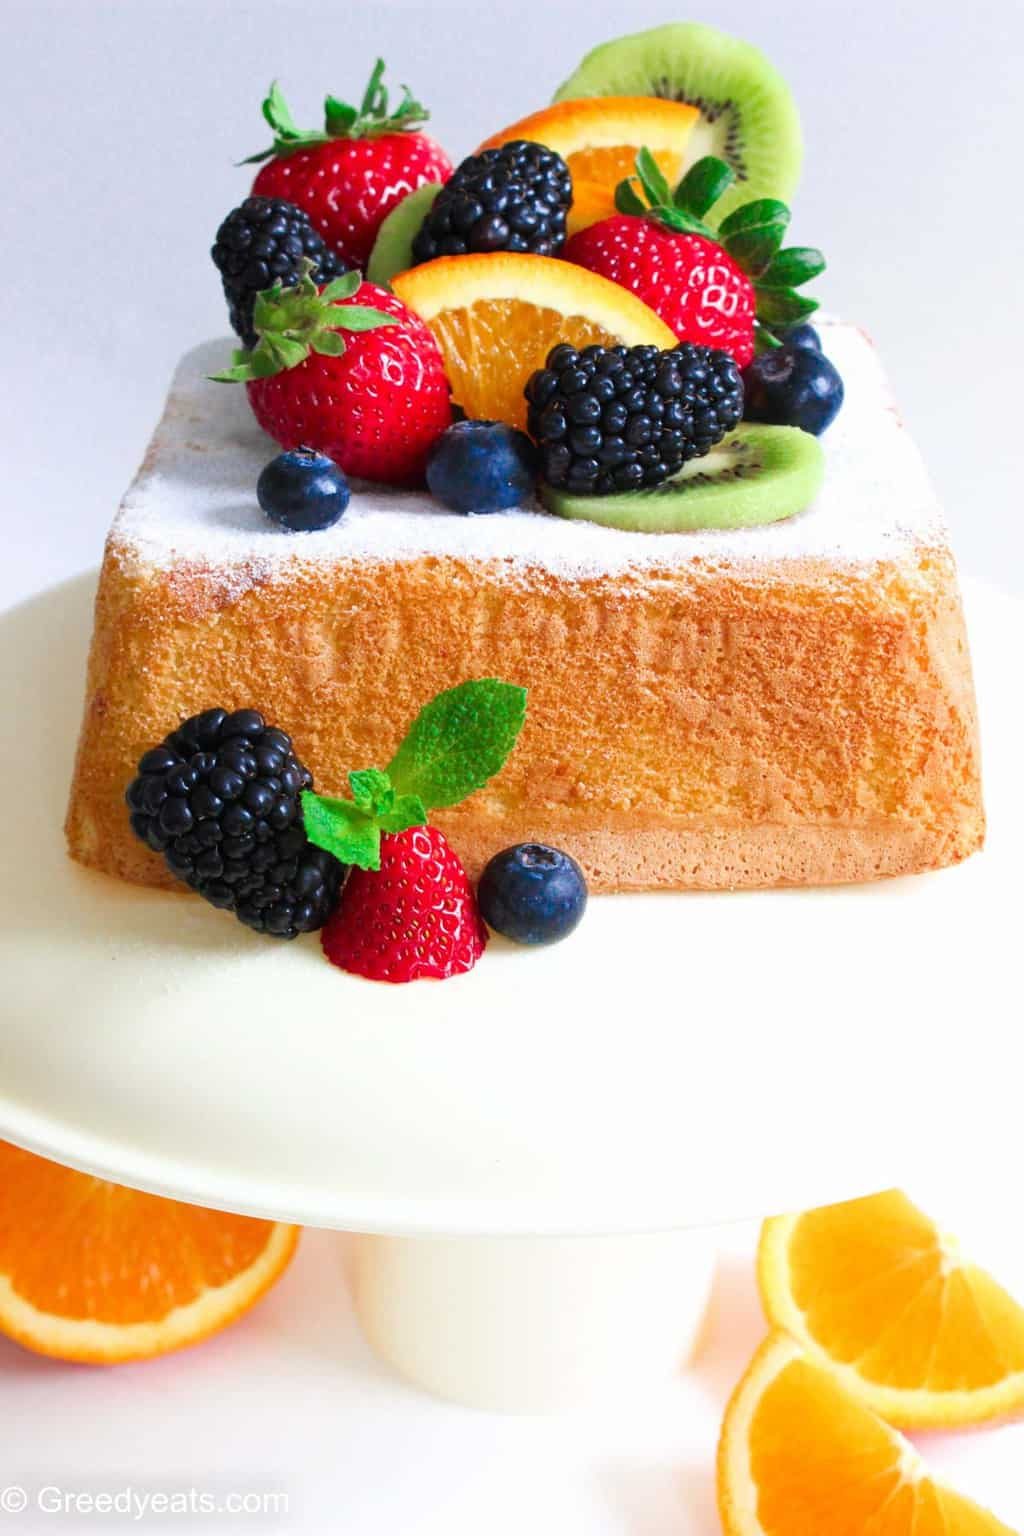 Soft, moist and fluffy Lemon Sponge Cake tipped with icing sugar and fresh fruits.